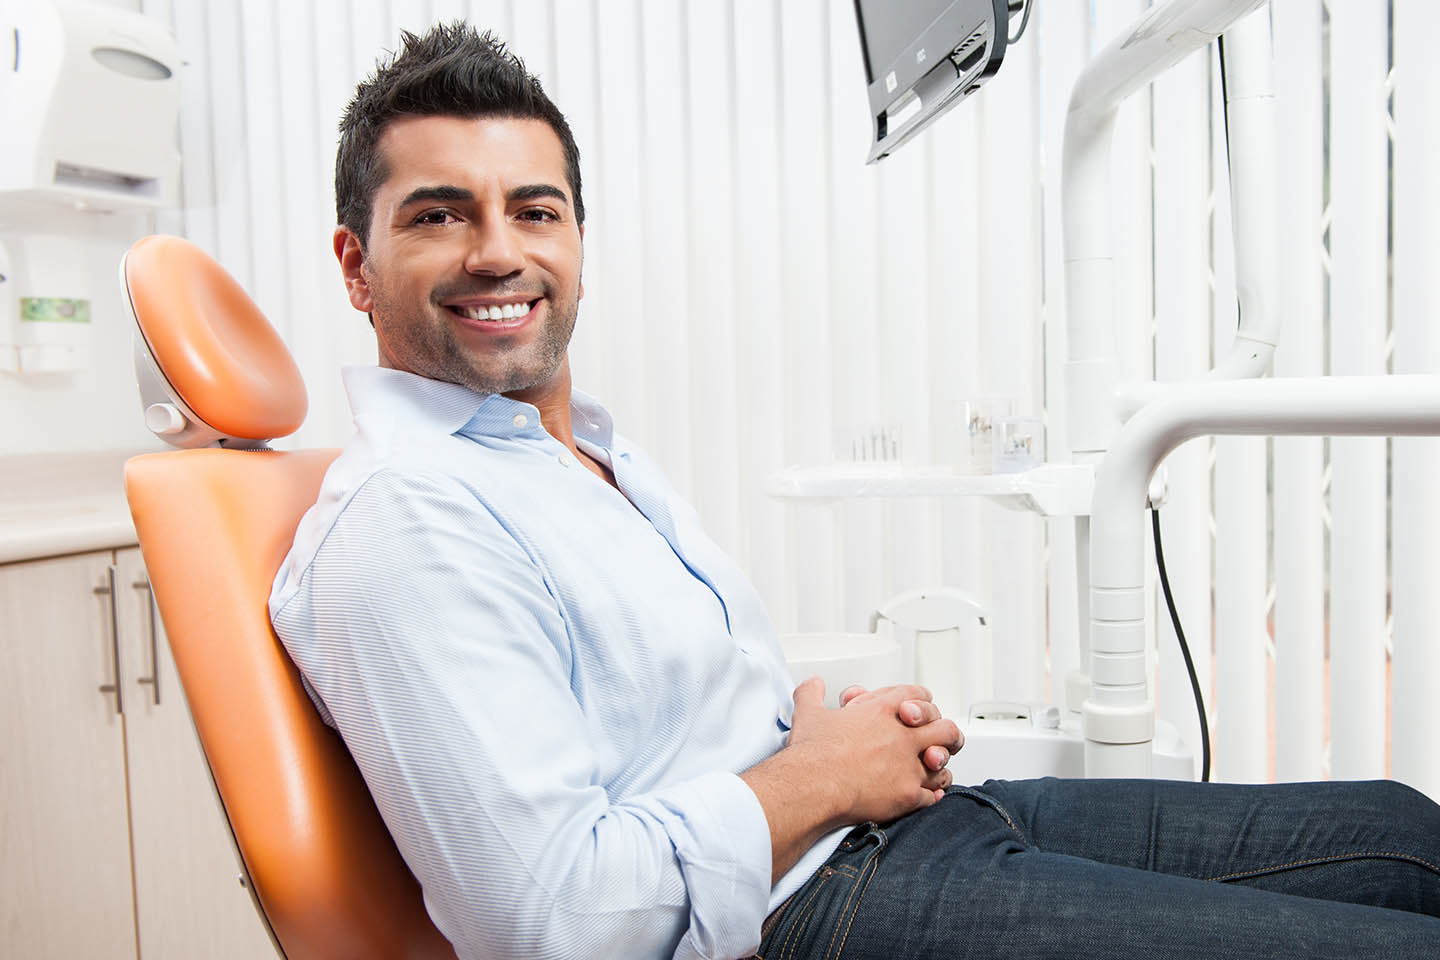 man leaning back in dentist chair smiling